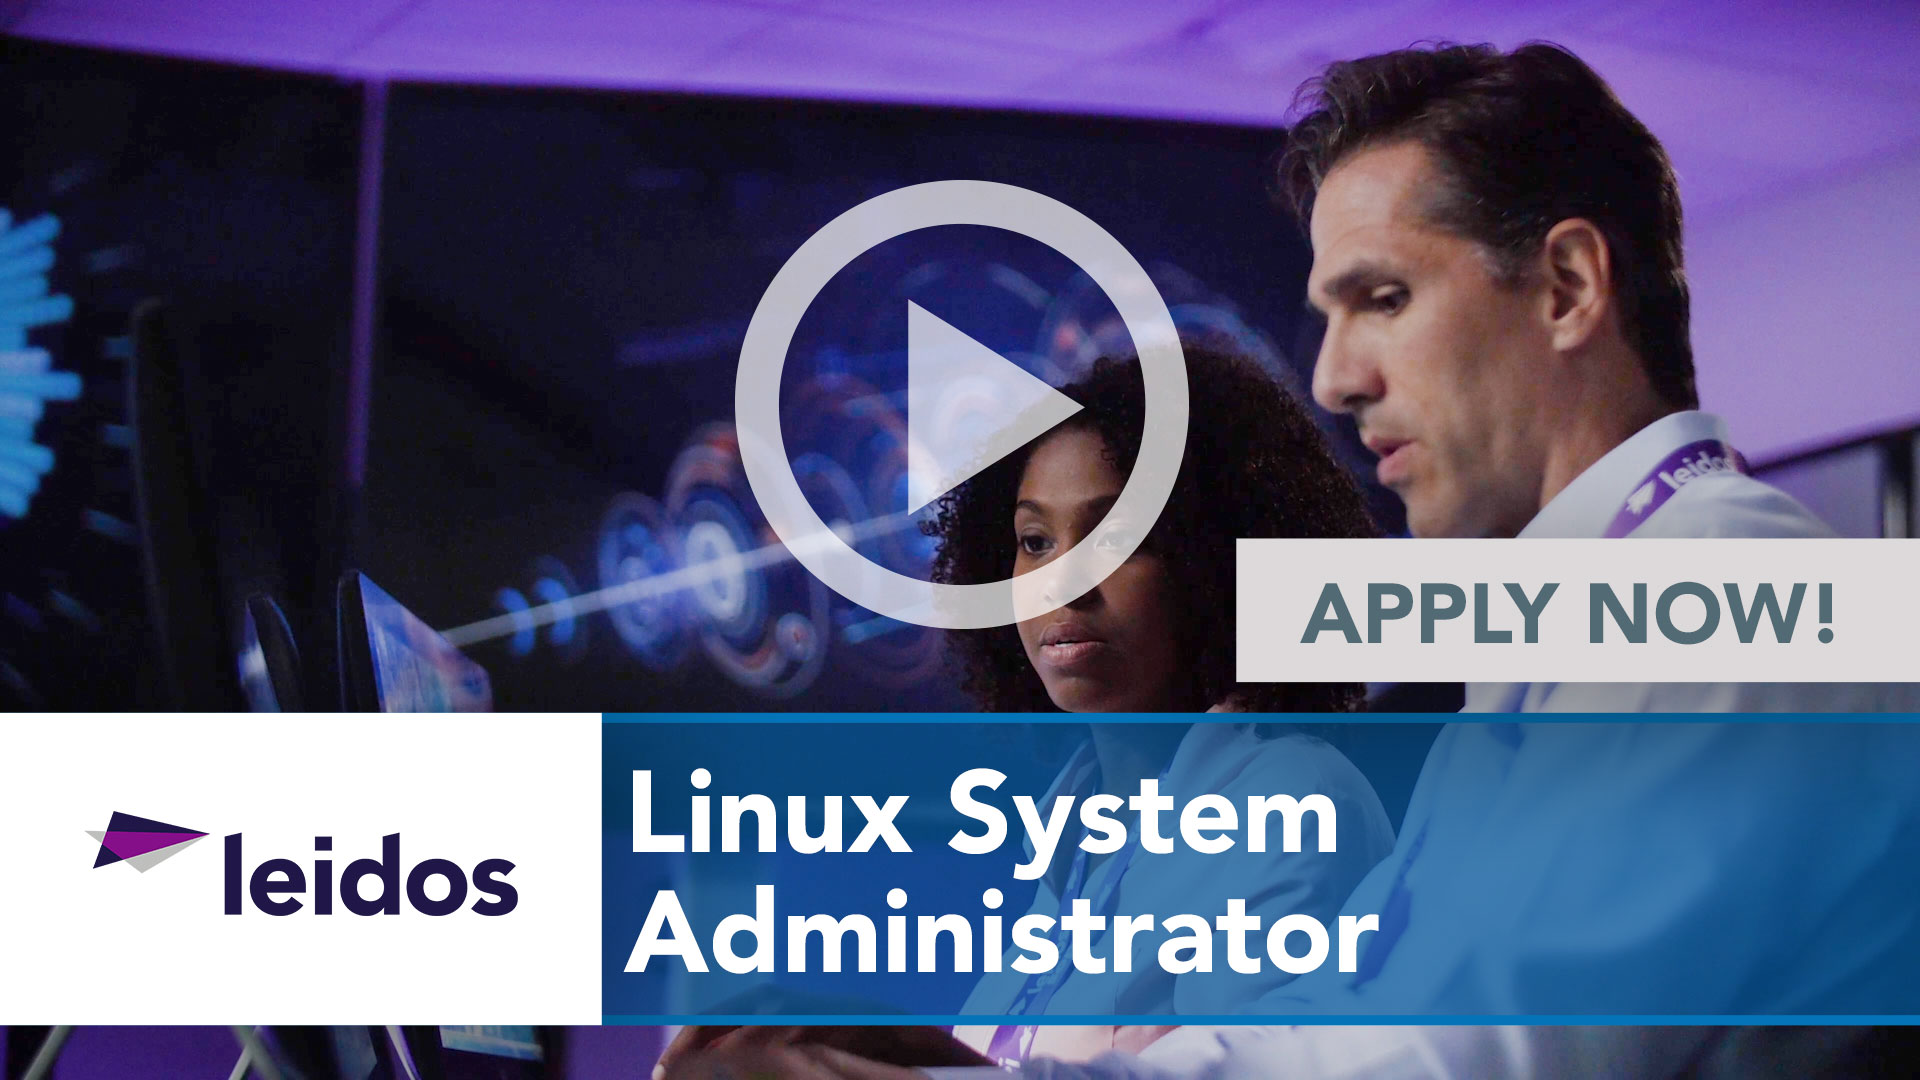 Watch our careers video for available job opening Linux System Administrator in National Capital Region with